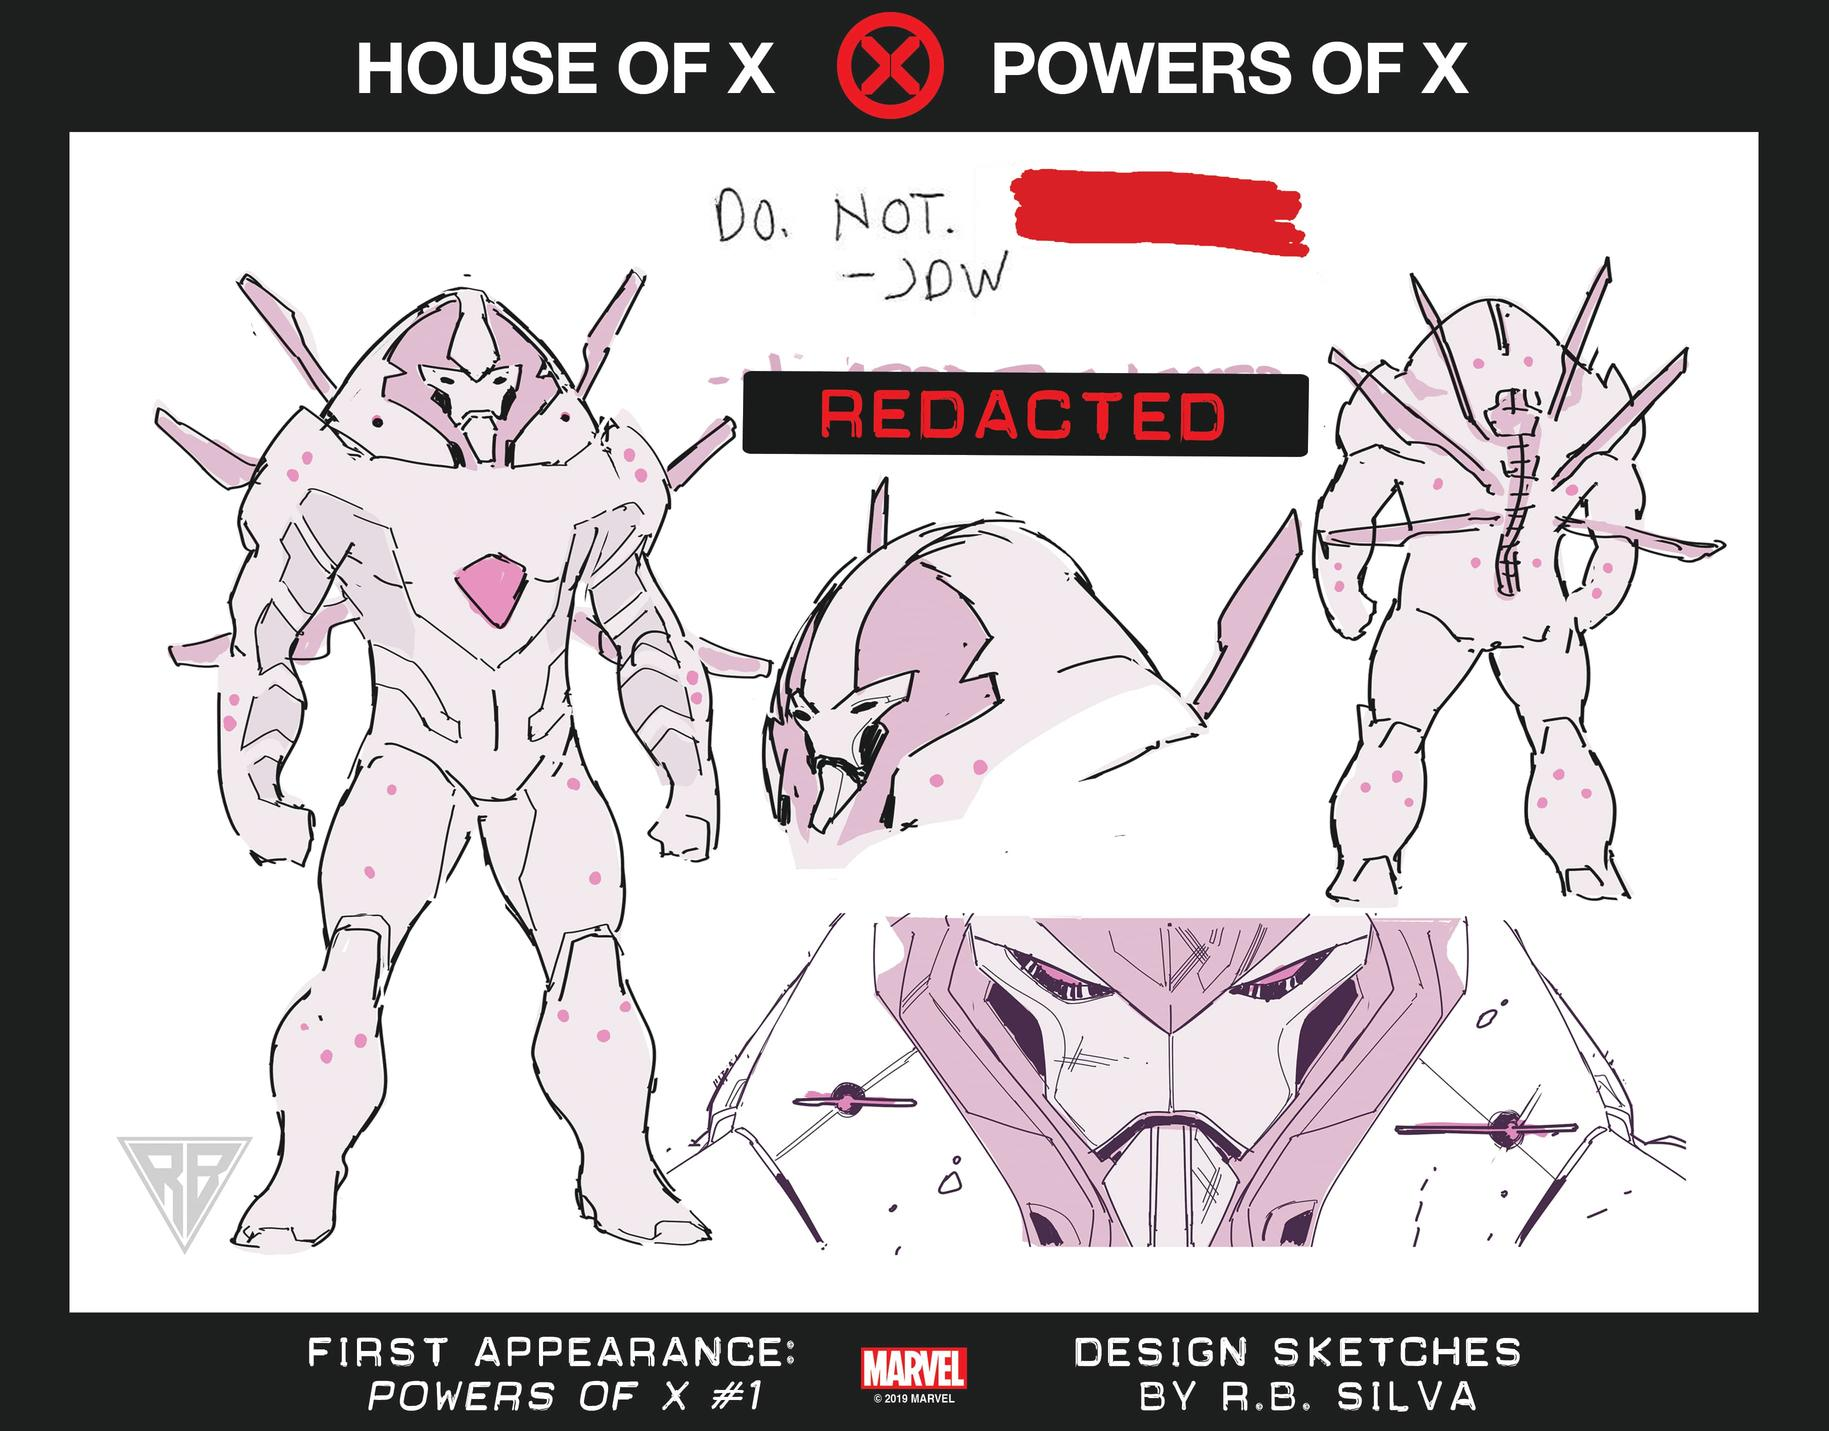 'House of X' and 'Powers of X'